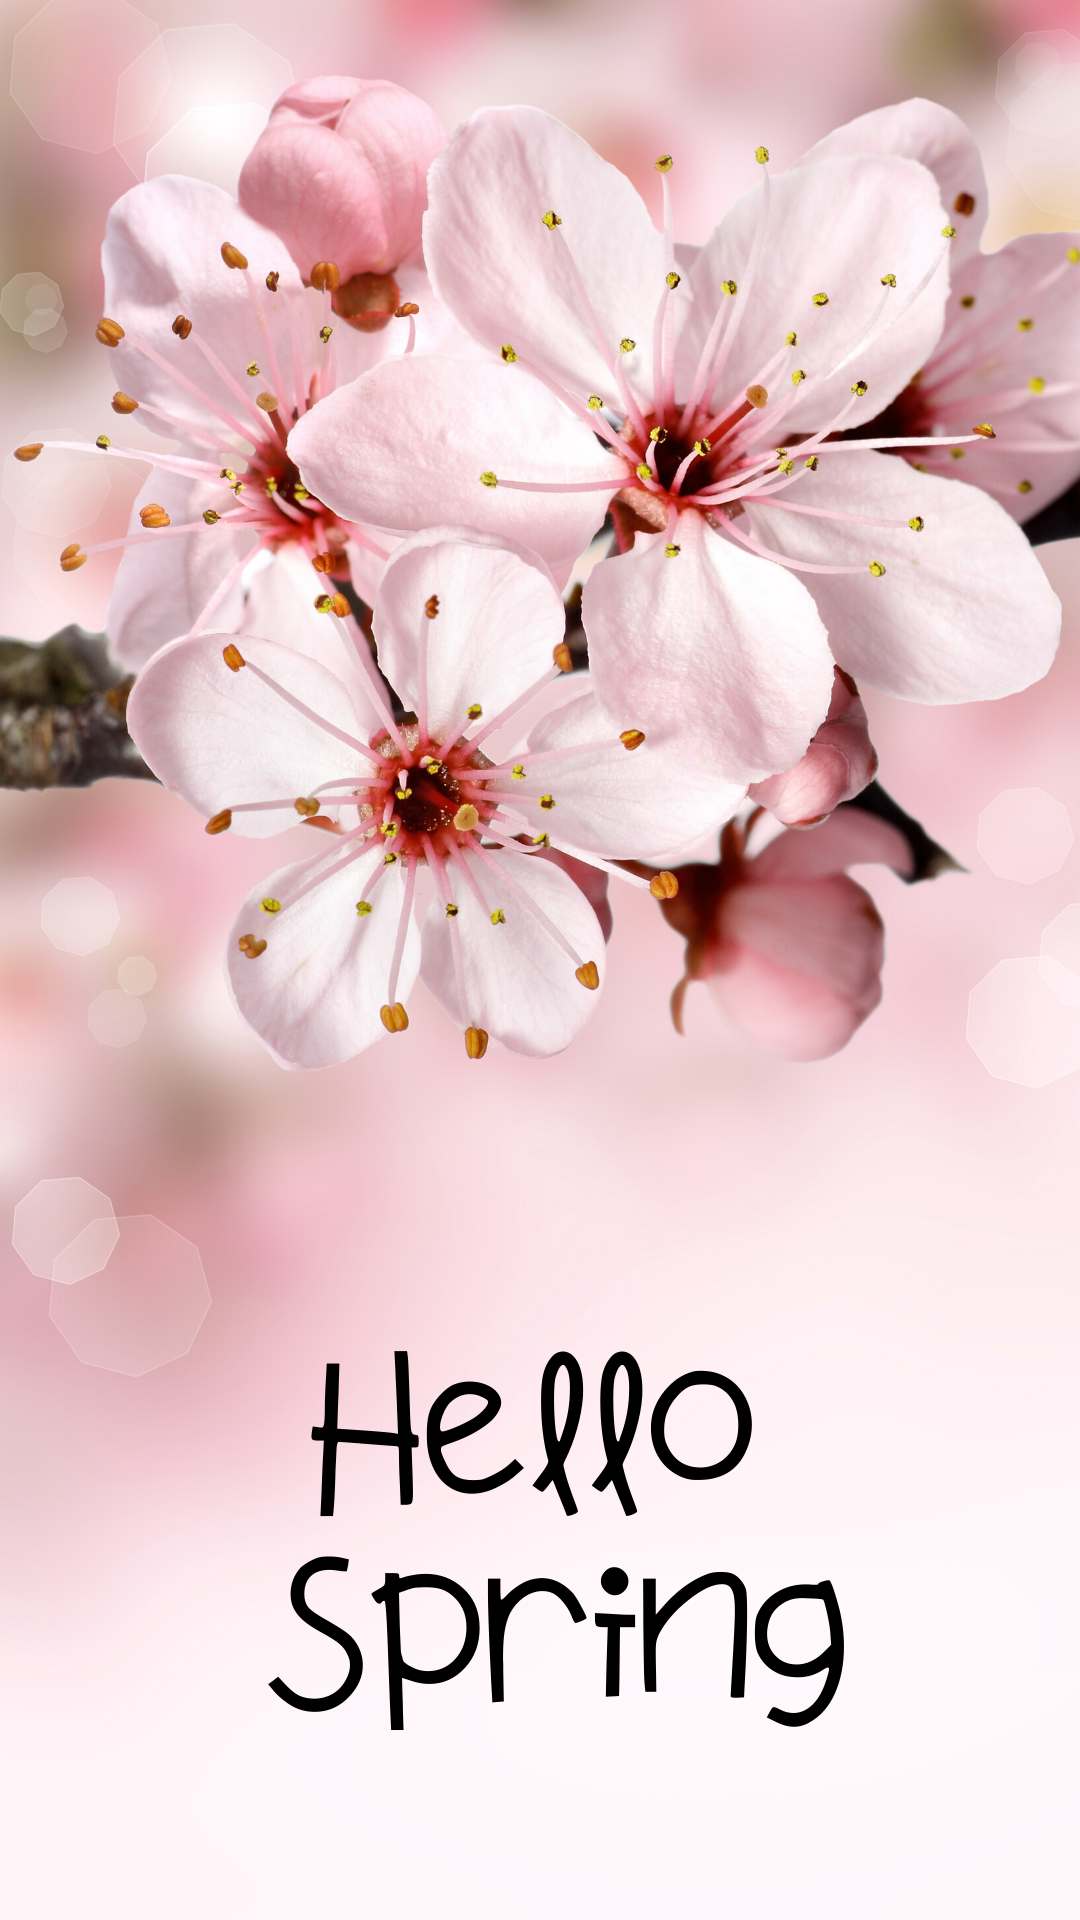 Spring Wallpaper for Your Phone | Spring wallpaper, Hello ...